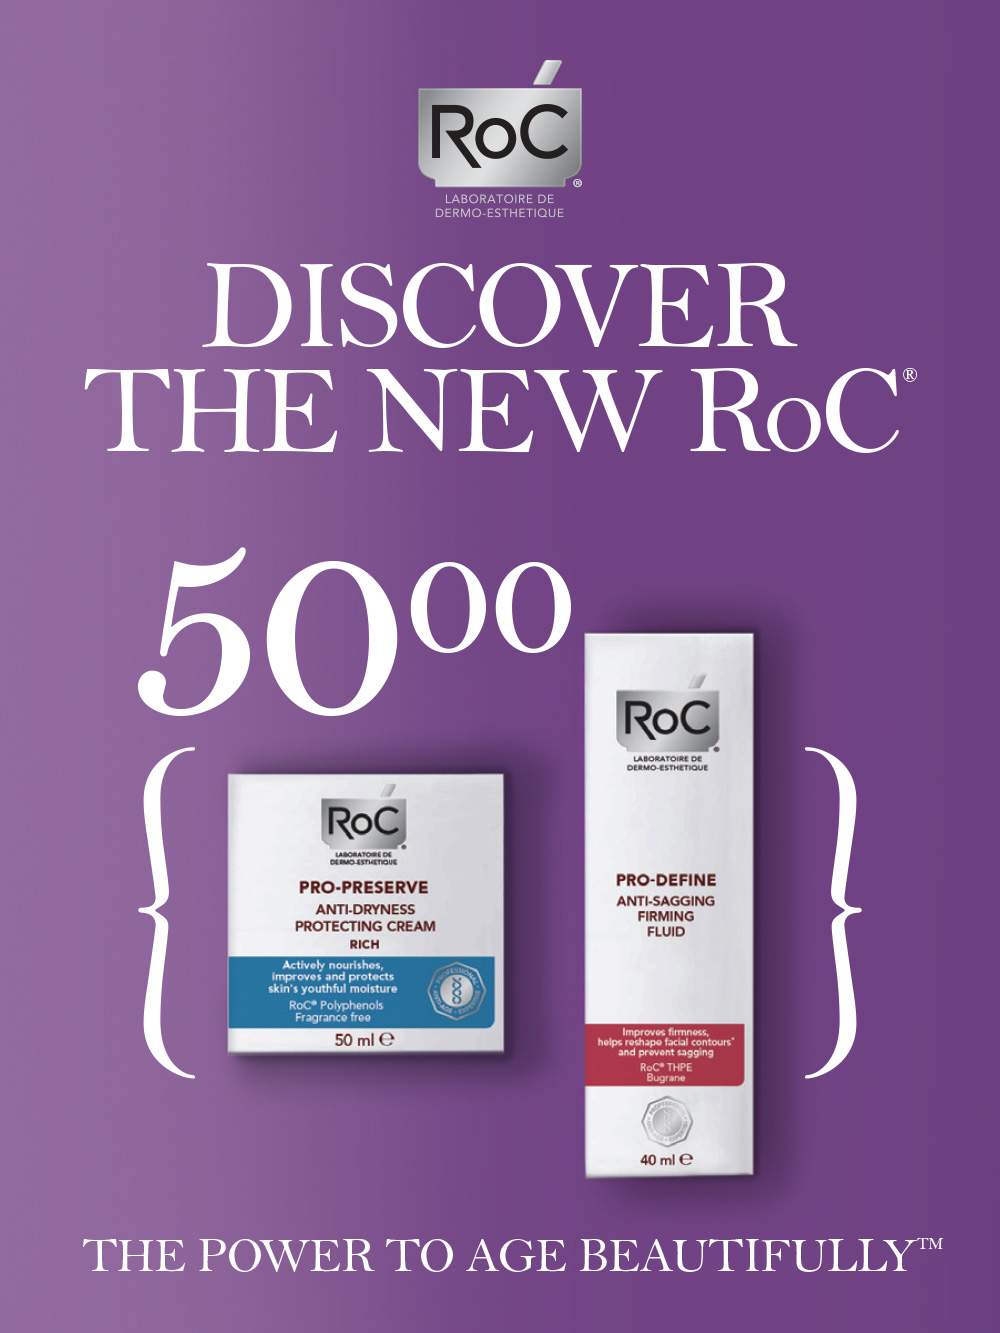 roc-discover-new-poster.jpg